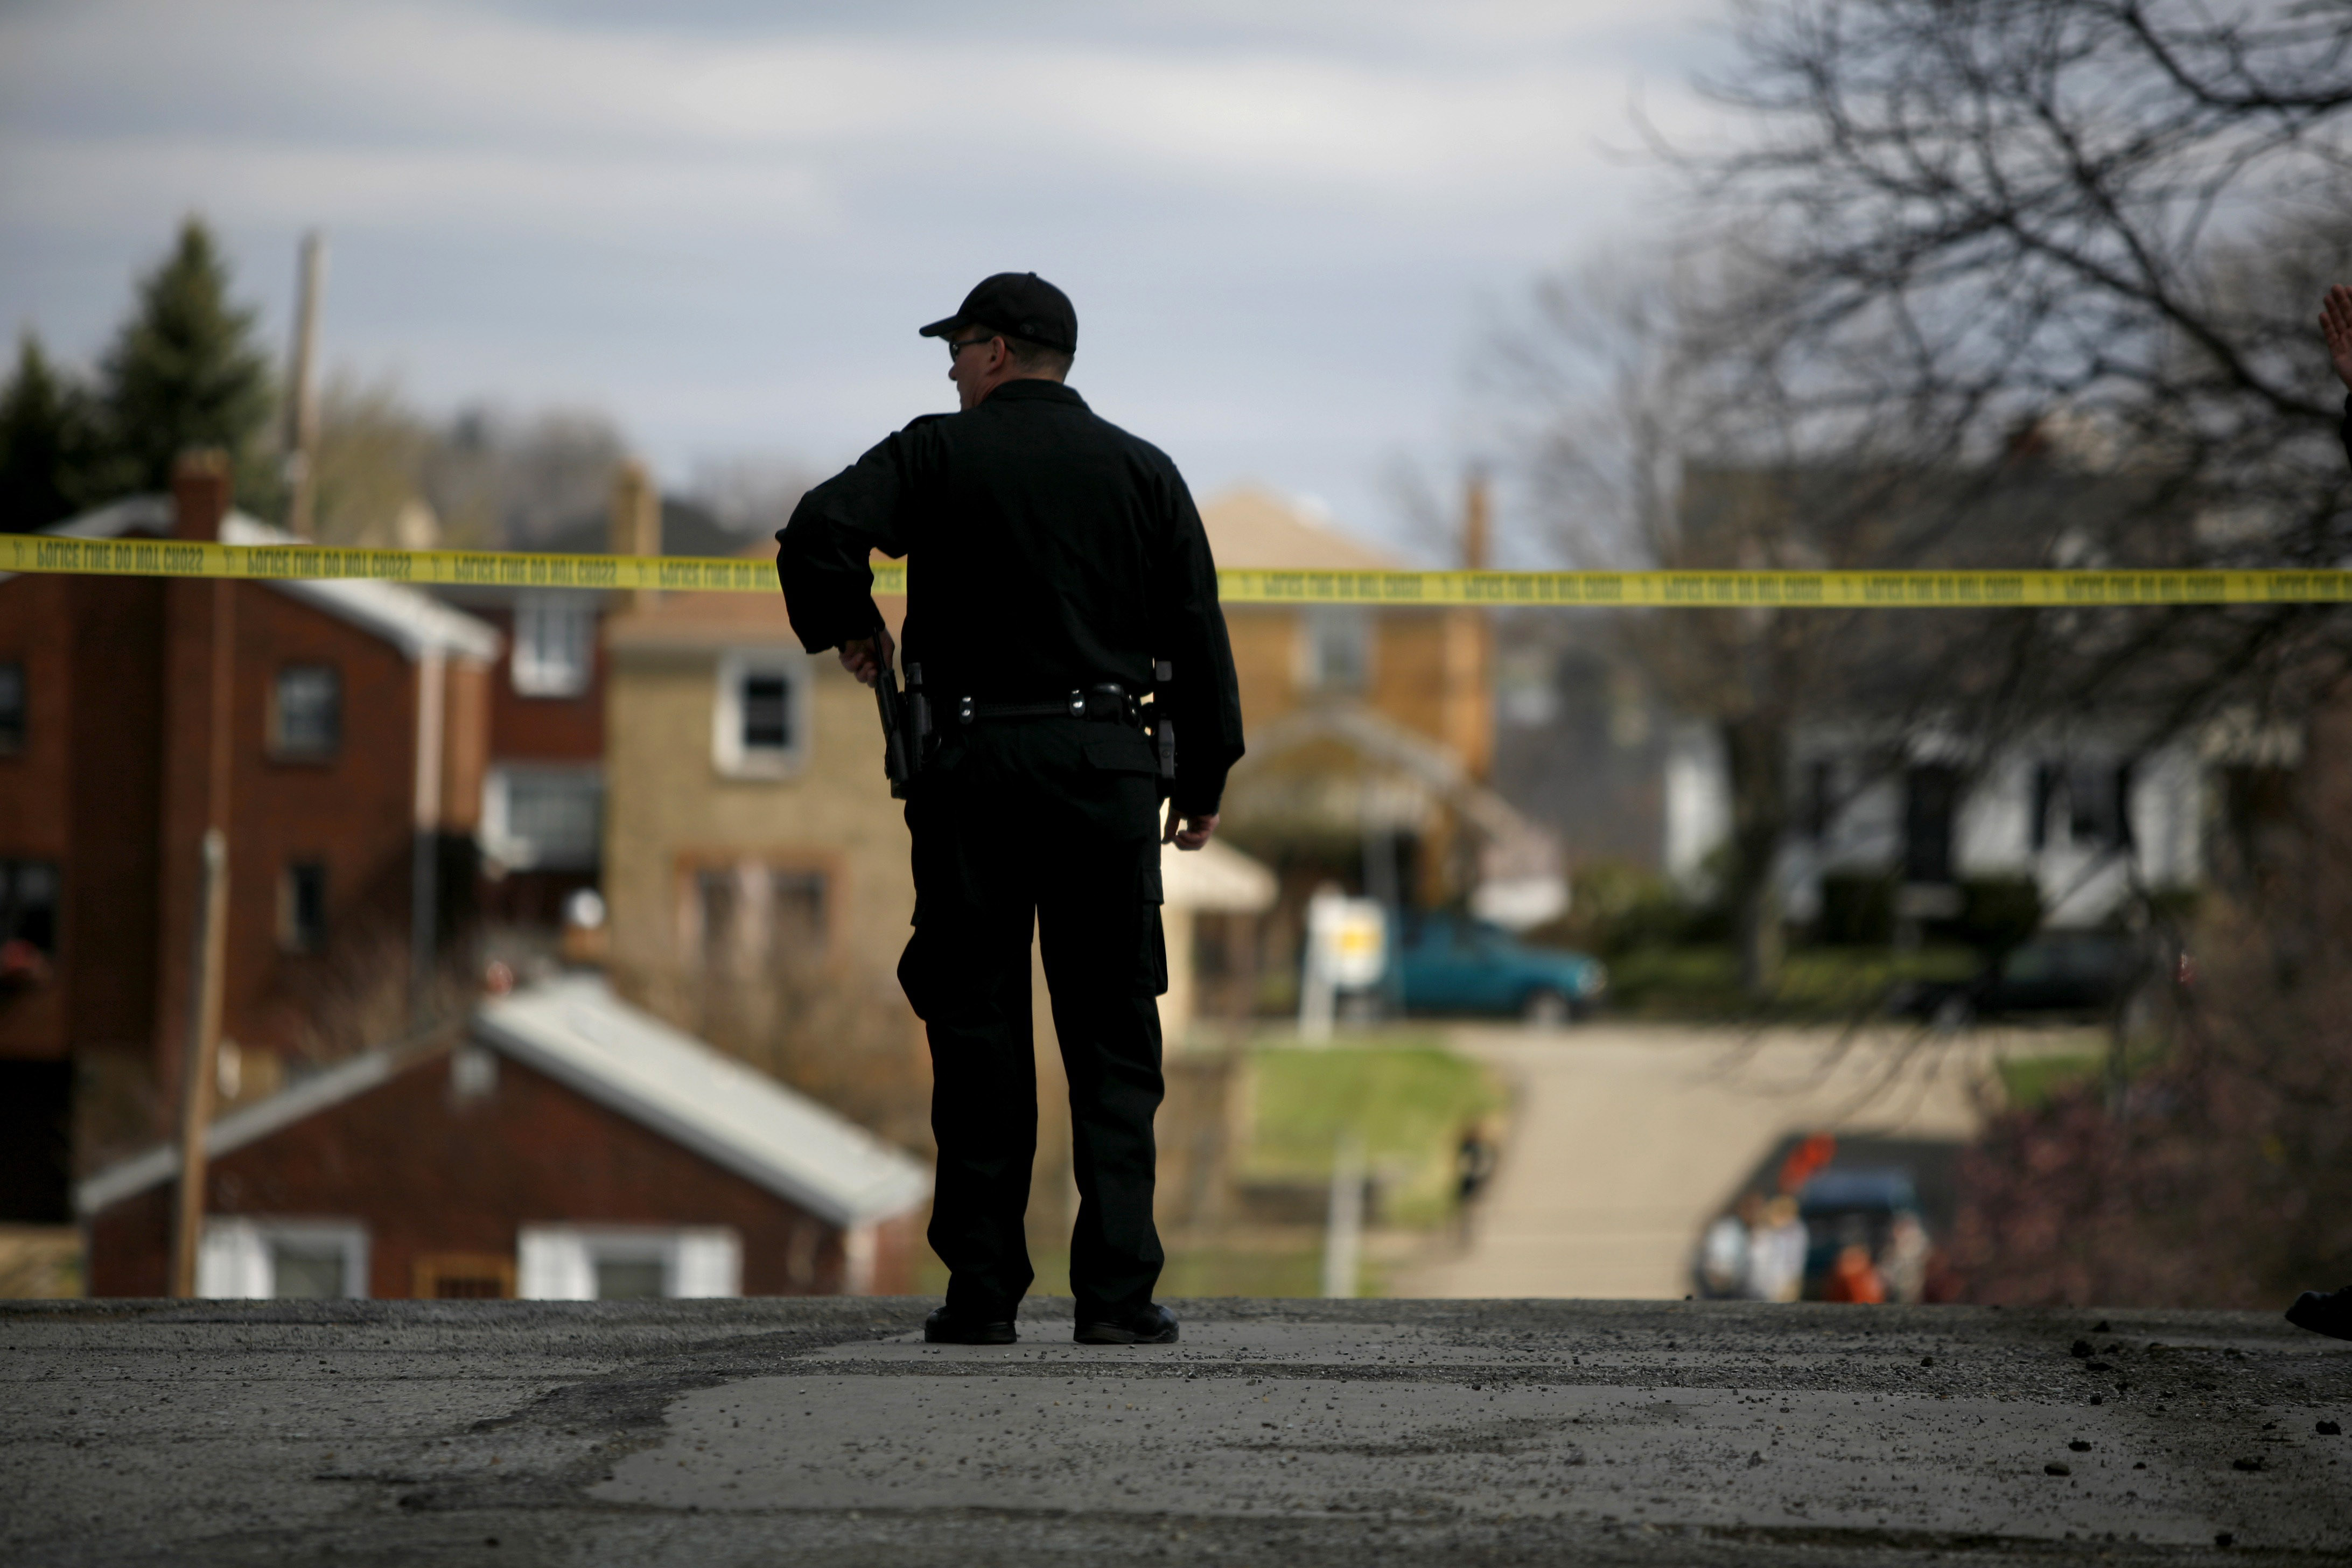 A police officer watches a crime scene on April 4, 2009, in Pittsburgh, Pennsylvania.